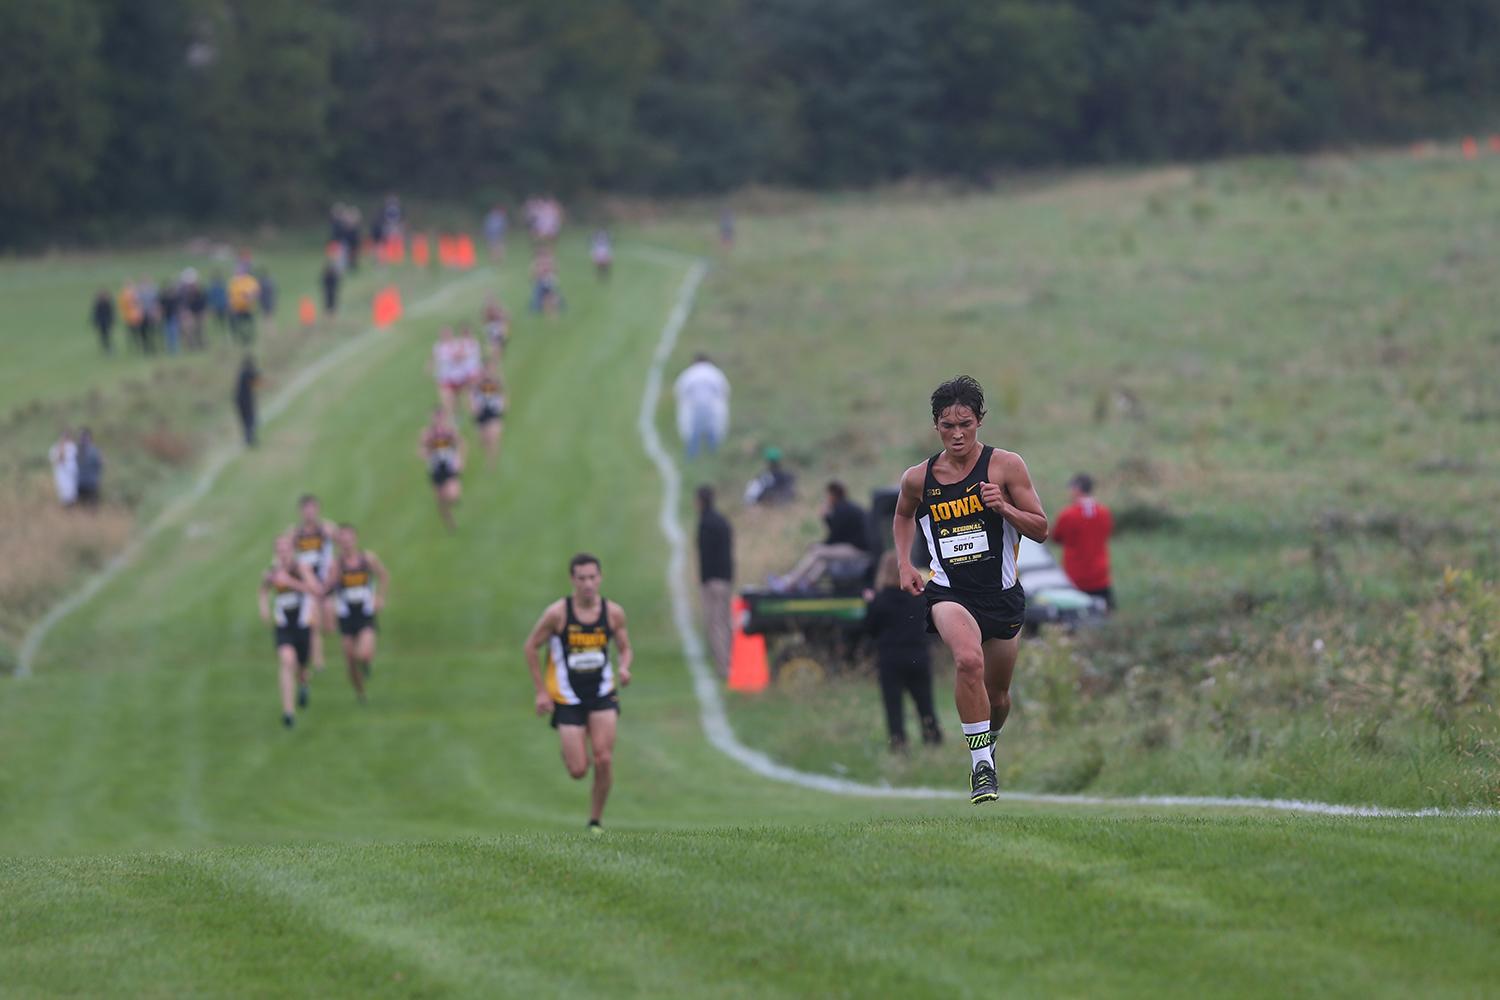 Hawkeye runner Daniel Soto sprints towards the finish line in 2nd place at Ashton Cross Country Course on Oct. 1, 2016.